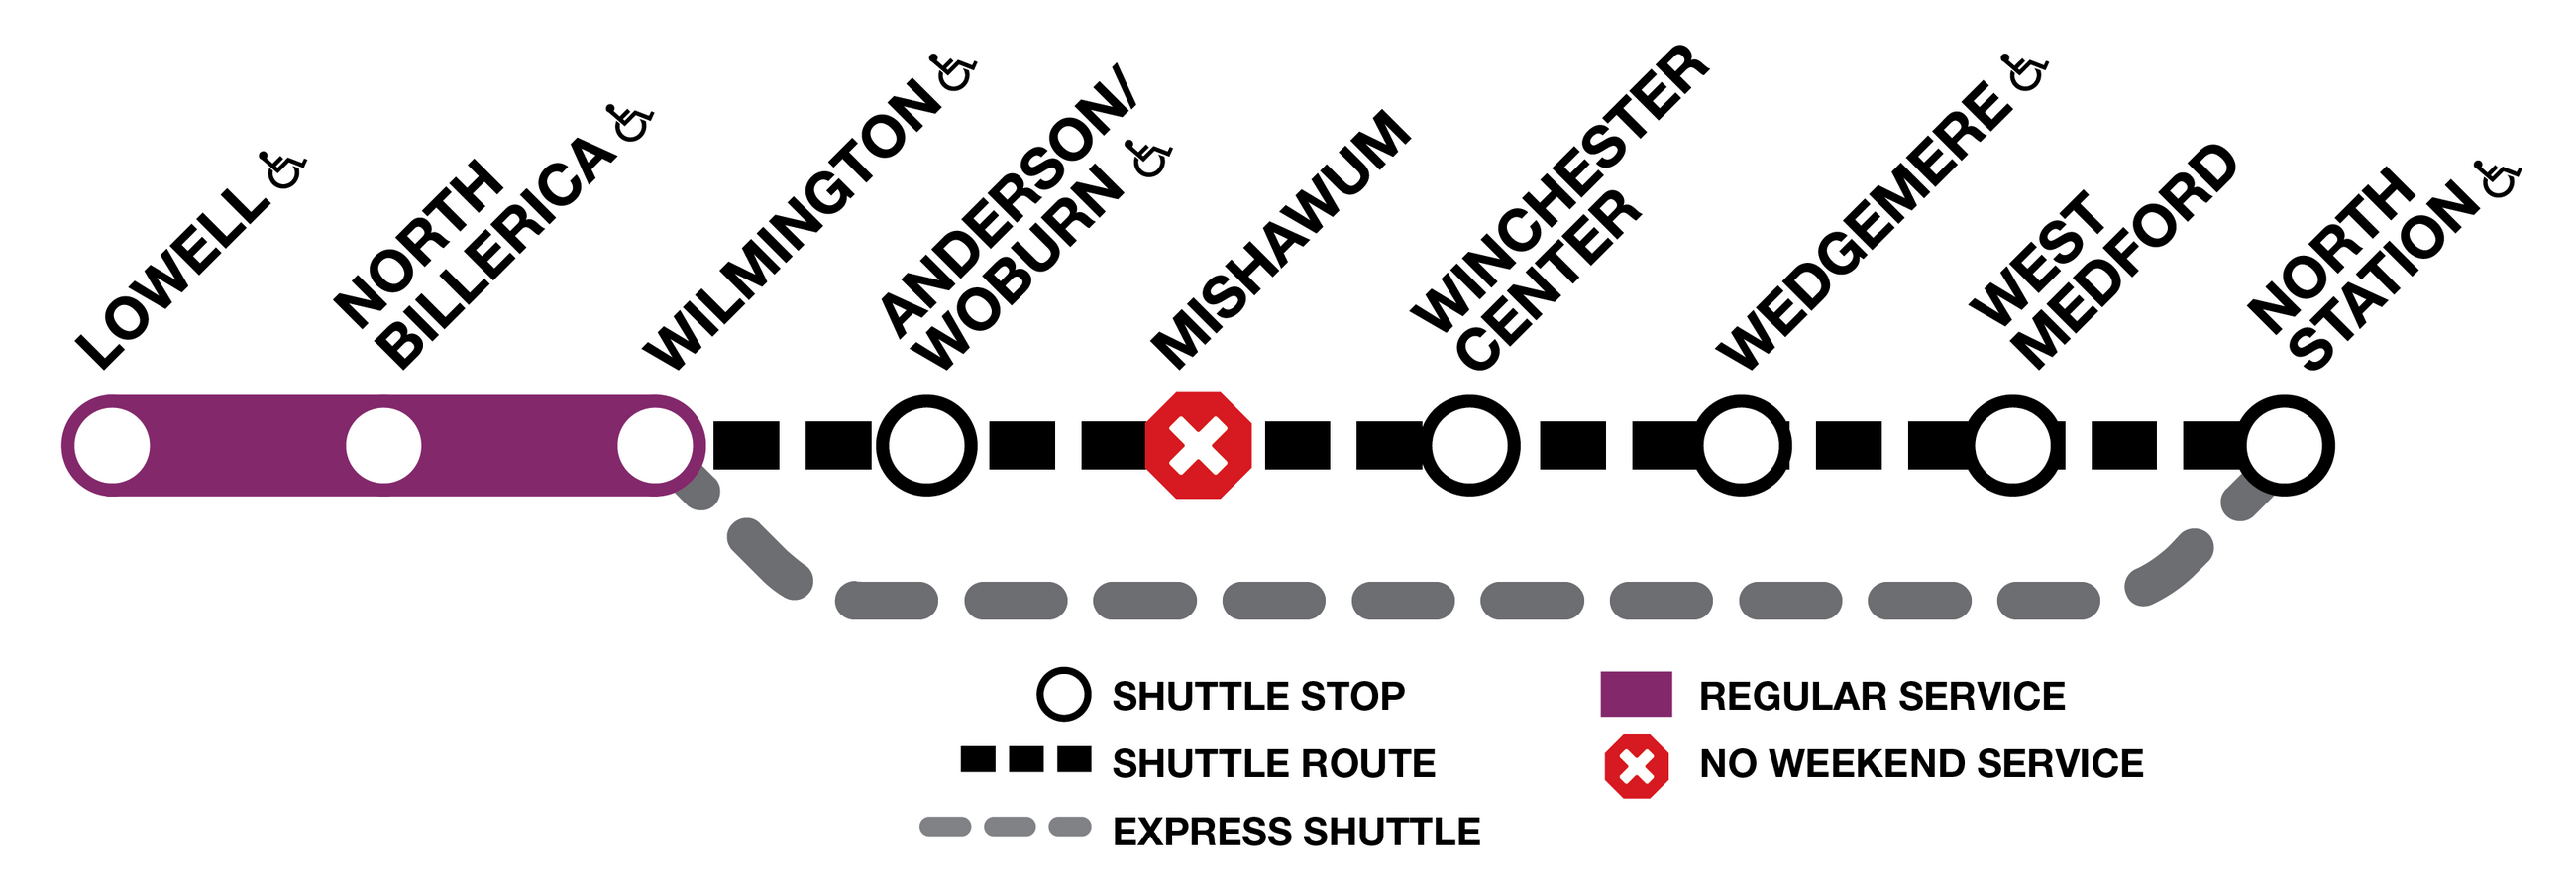 Lowell Line trains service is replace by bus shuttles between Wilmington and North Station, with no service at Mishawum.